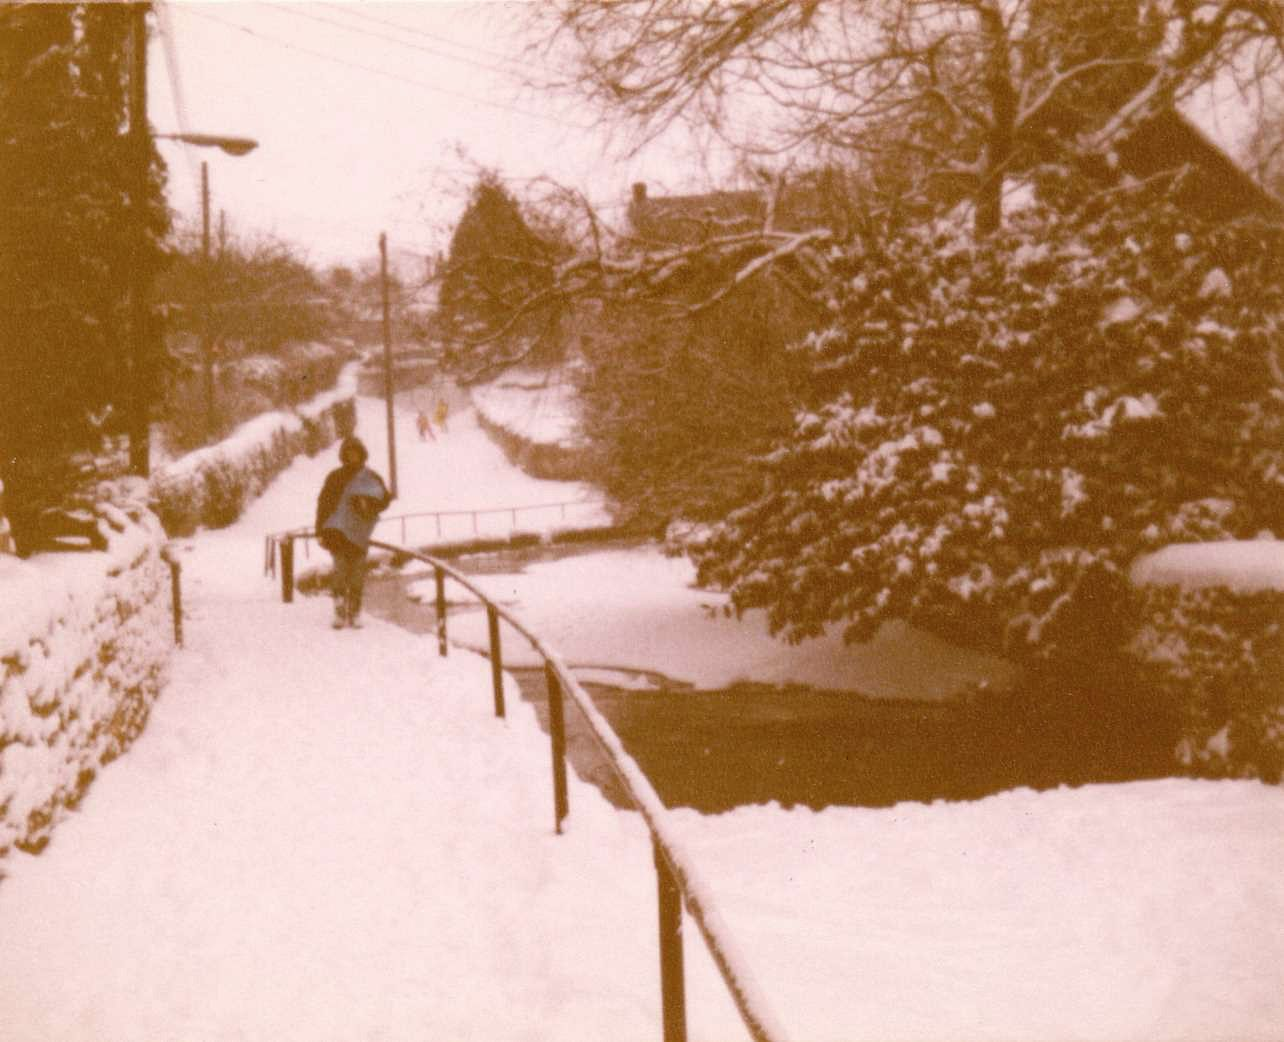 c. 1983. Ford in Mill Lane.